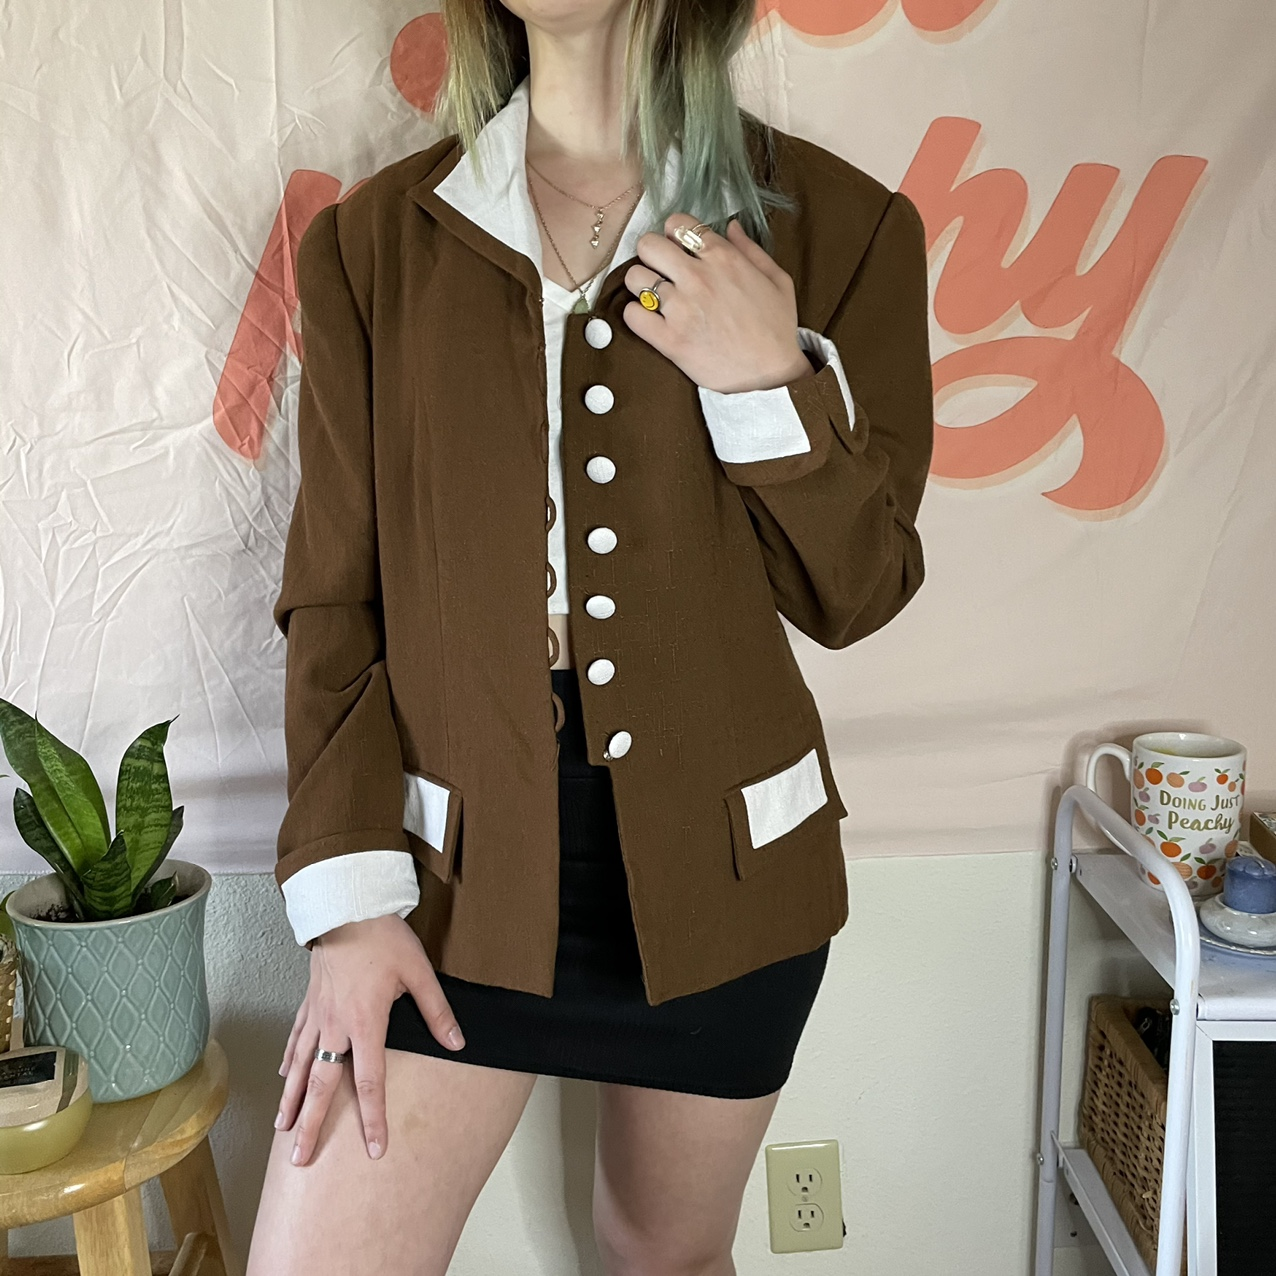 Product Image 1 - Brown and white vintage blazer